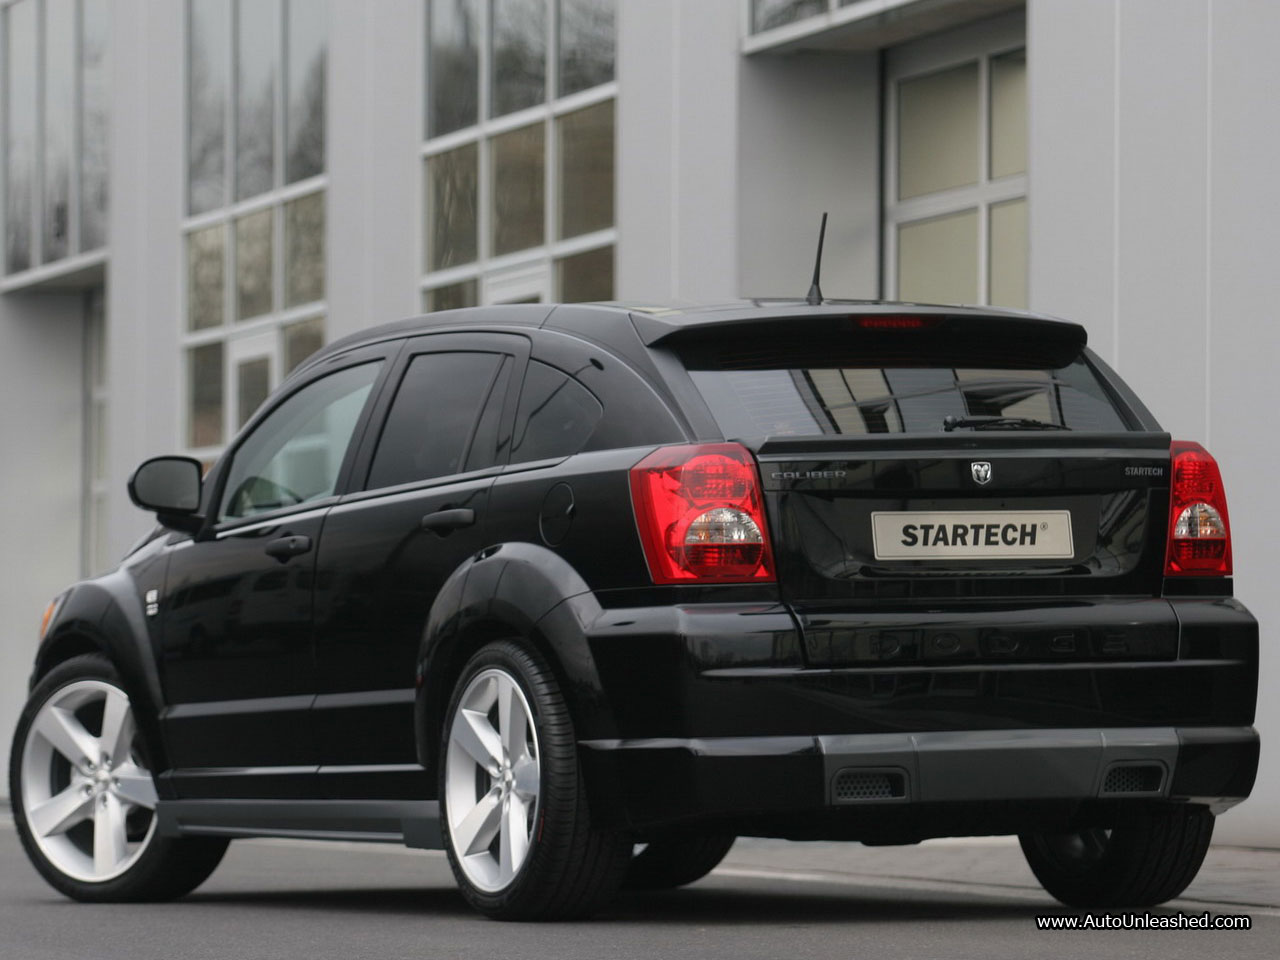 Dodge Caliber photo 05